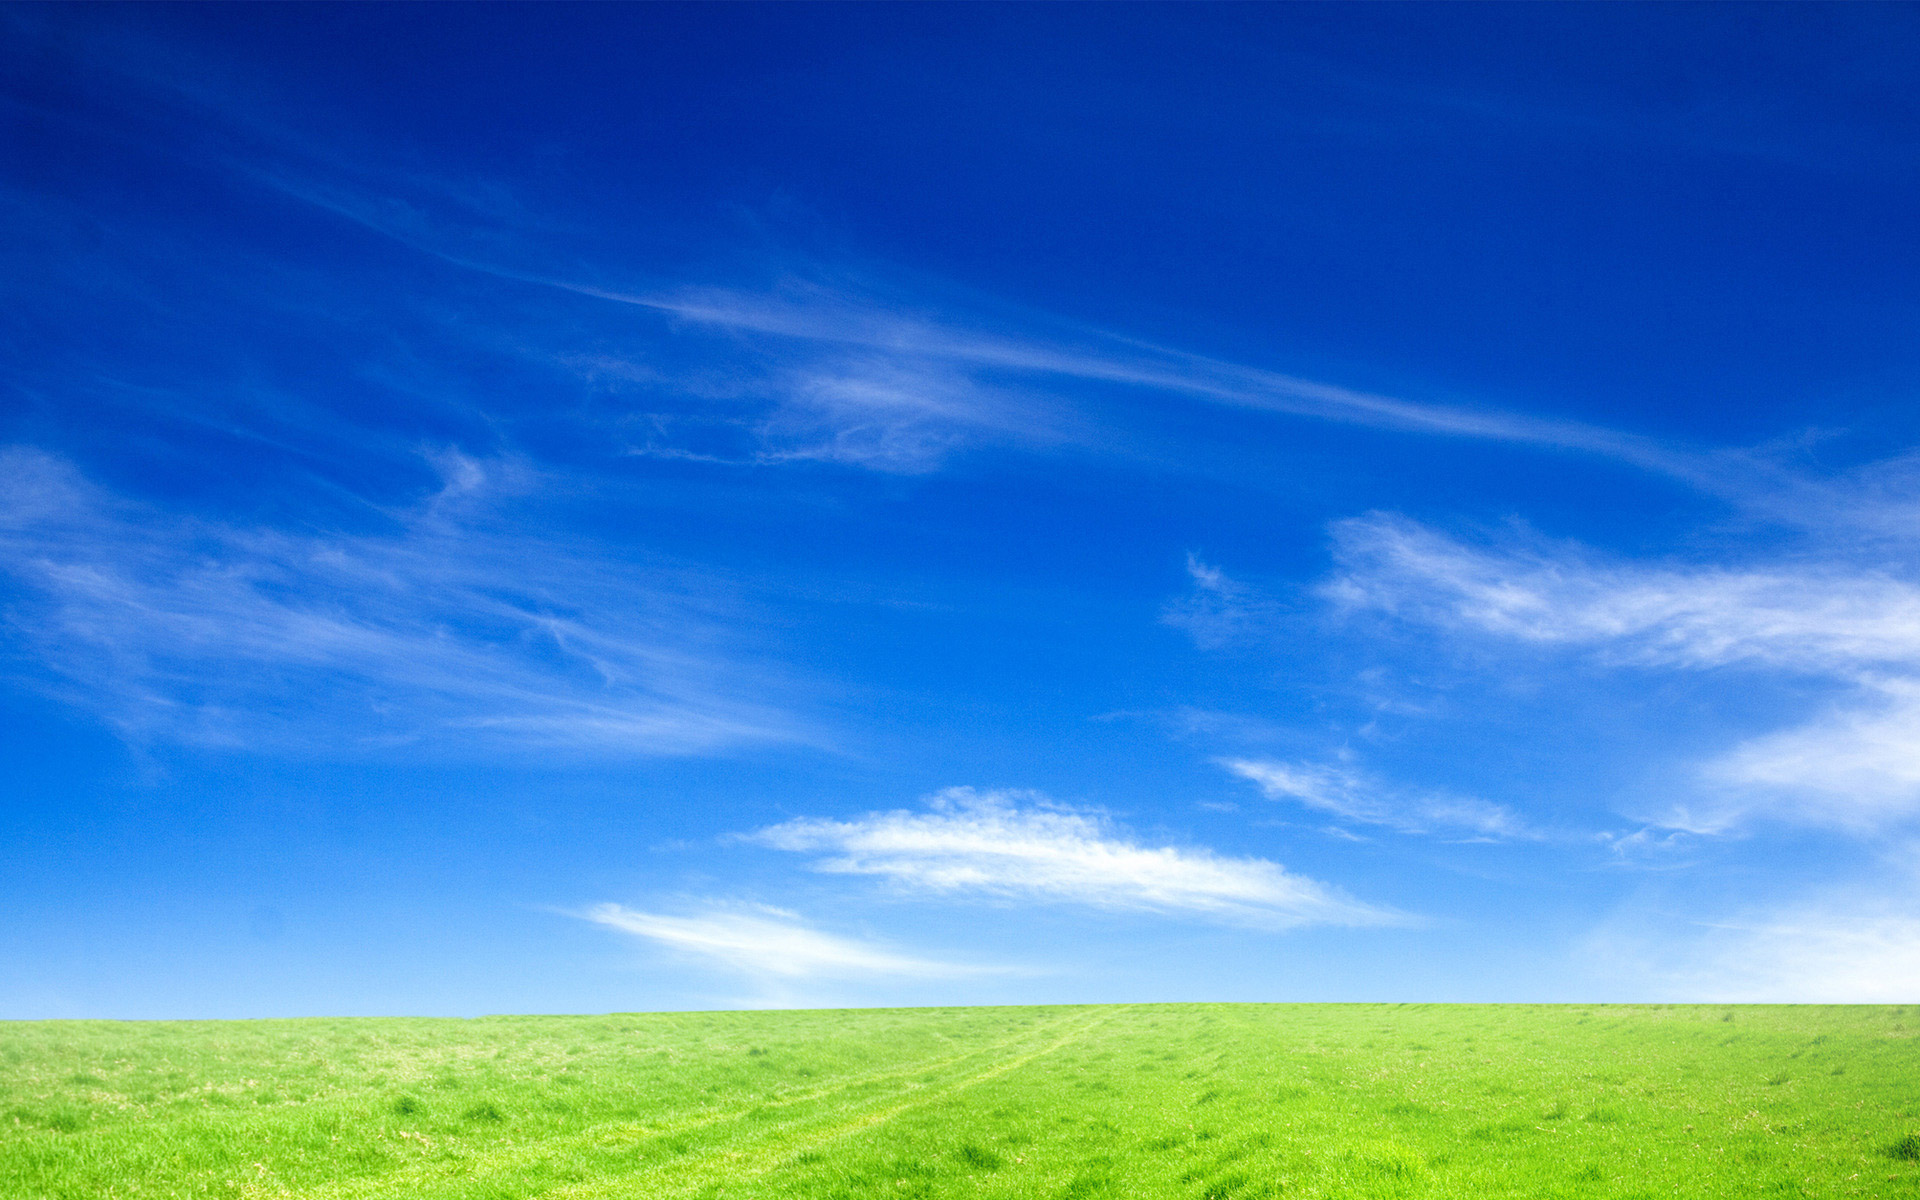 3d Sky Wallpapers Free Download Blue Sky Green Grass Facebook Covers Wallpapers Hd